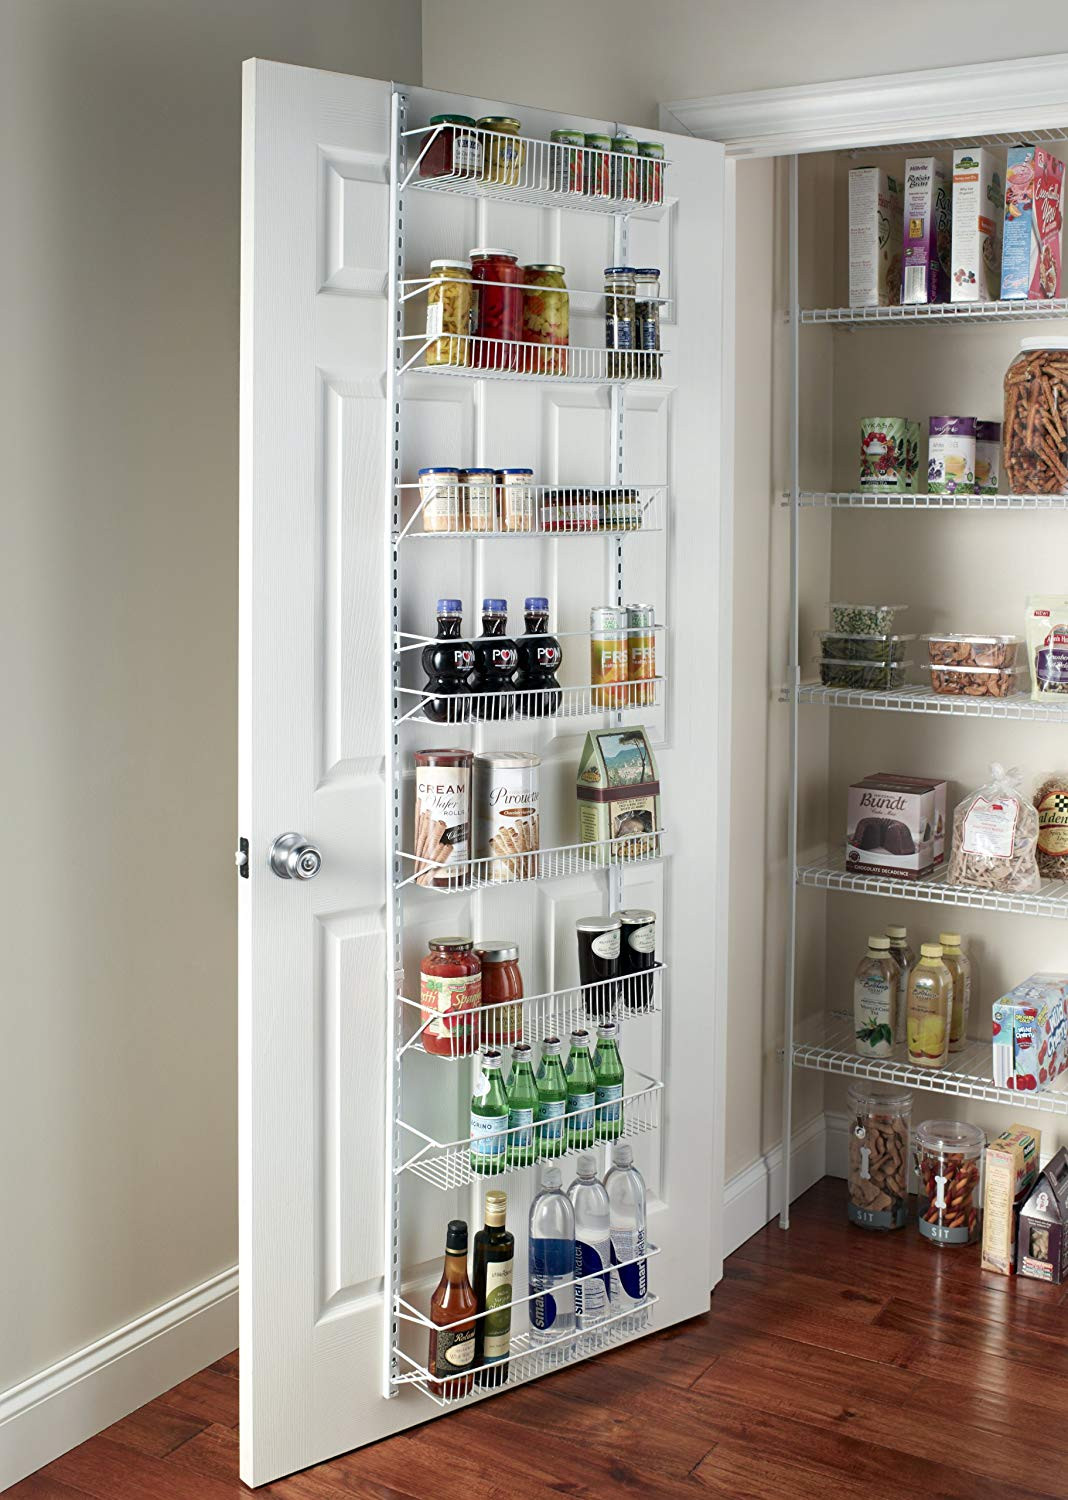 Best ideas about Kitchen Organizer Rack . Save or Pin Wall Rack Closet Organizer Pantry Adjustable Floating Now.